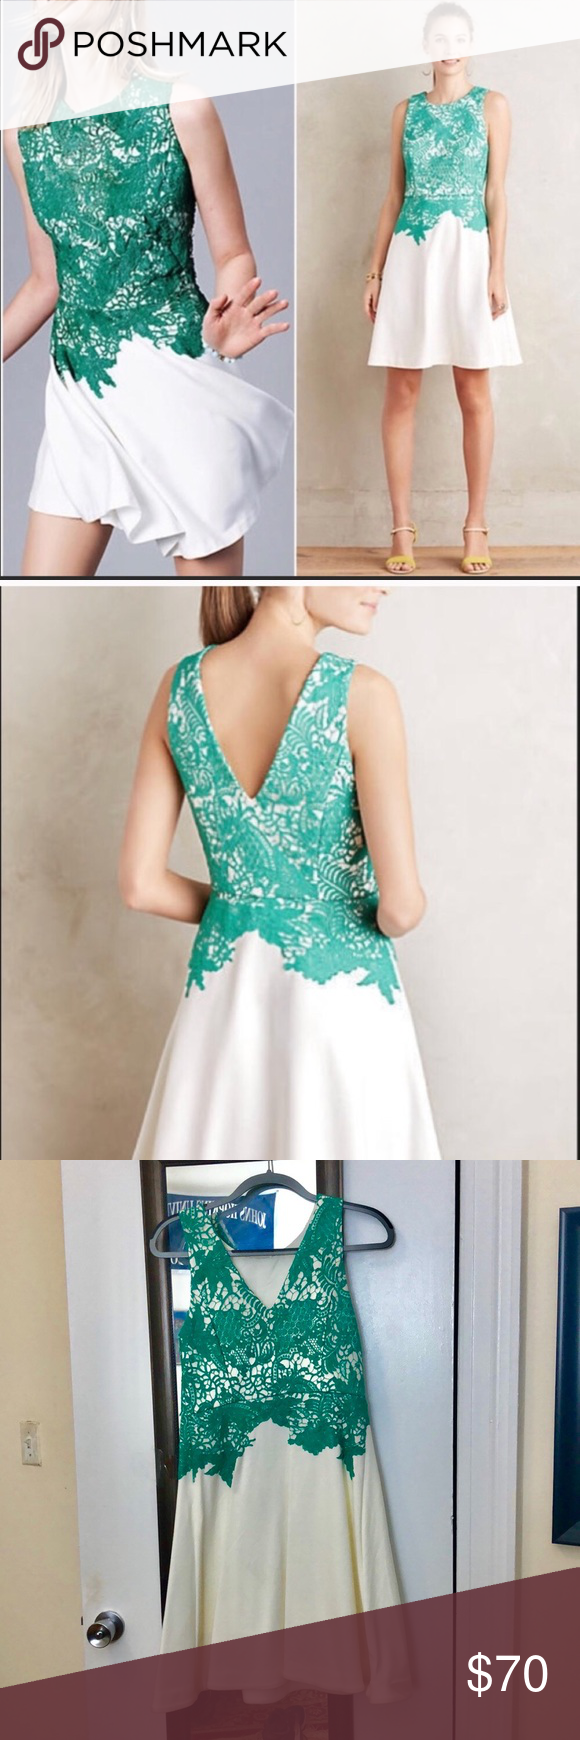 Green dress with lace overlay  Moulinette Soeurs lace overlay dressOFFERS  My Posh Picks